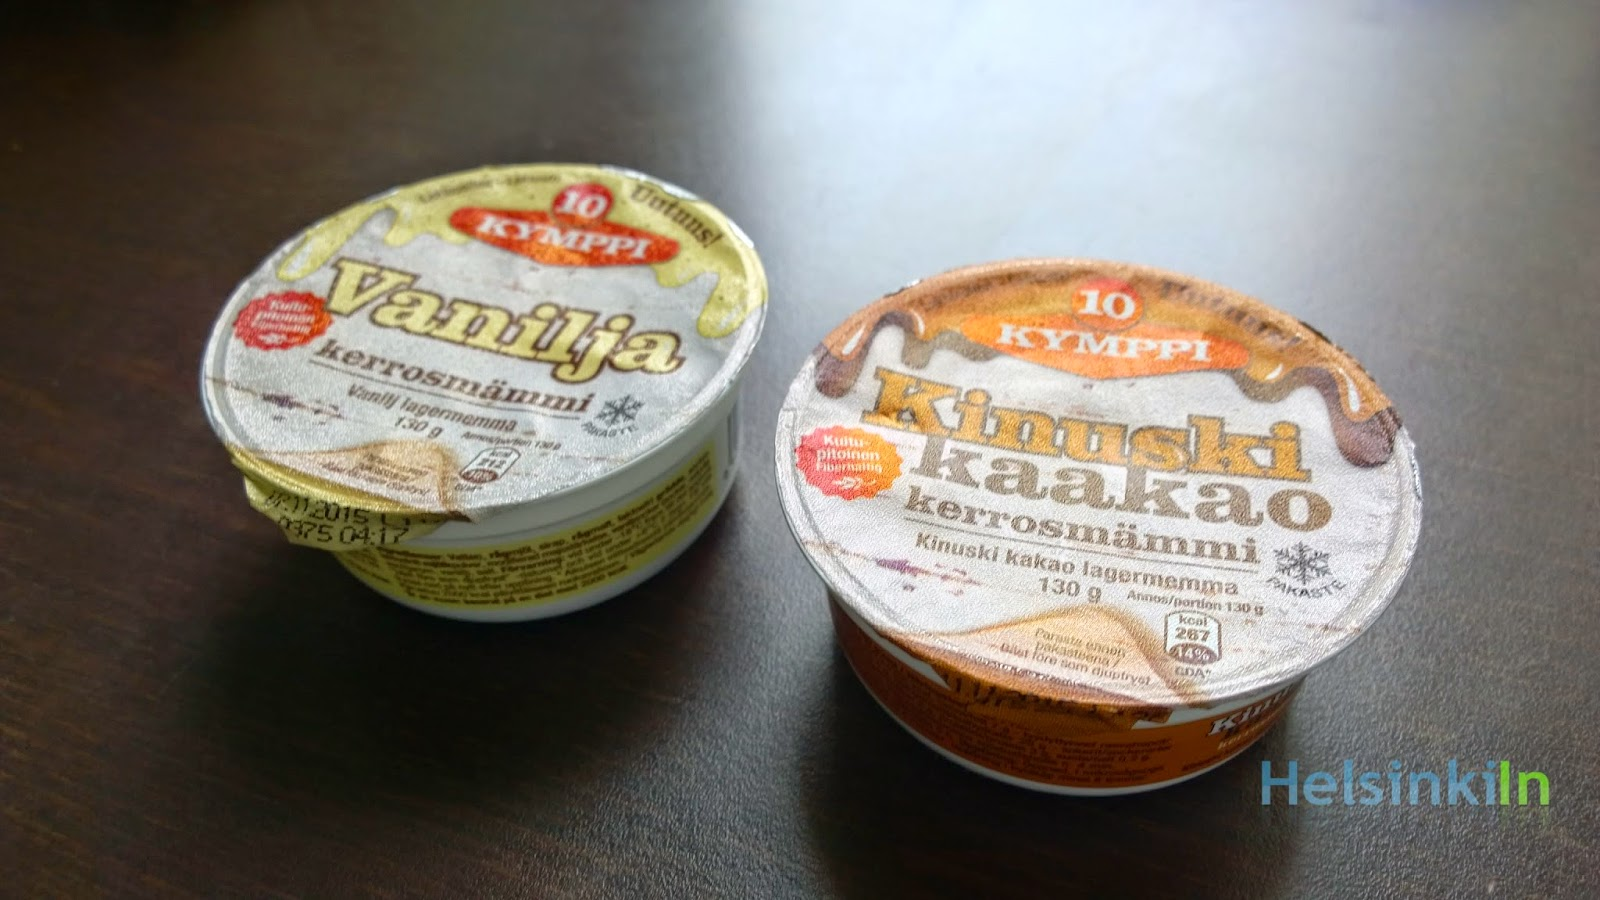 mämmi with vanilla or with caramel coacoa